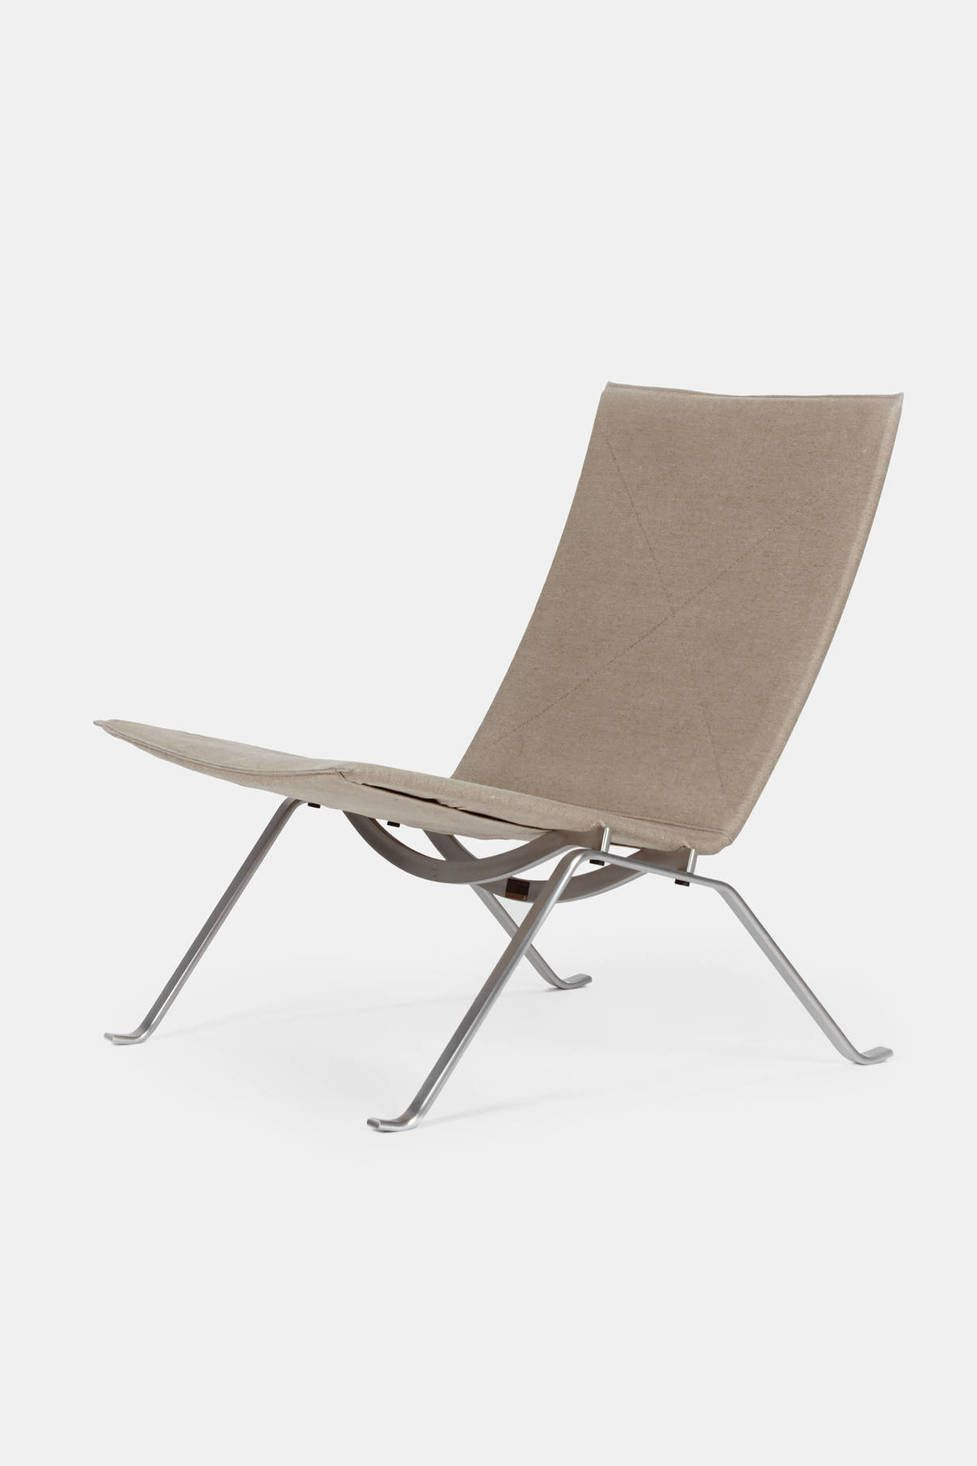 "Upholstered in natural canvas, this elegant lounge chair epitomizes the work of Poul Kjærholm and his search for the ideal form and industrial dimension. The profile of the steel frame originates from his graduation project, the ""Element"" Chair (PK25), at the School of Applied Arts in Copenhagen. In 1957, the PK22 was awarded the Grand Prix at the Milan Triennale, a prize that catapulted Kjærholm onto the international design scene."